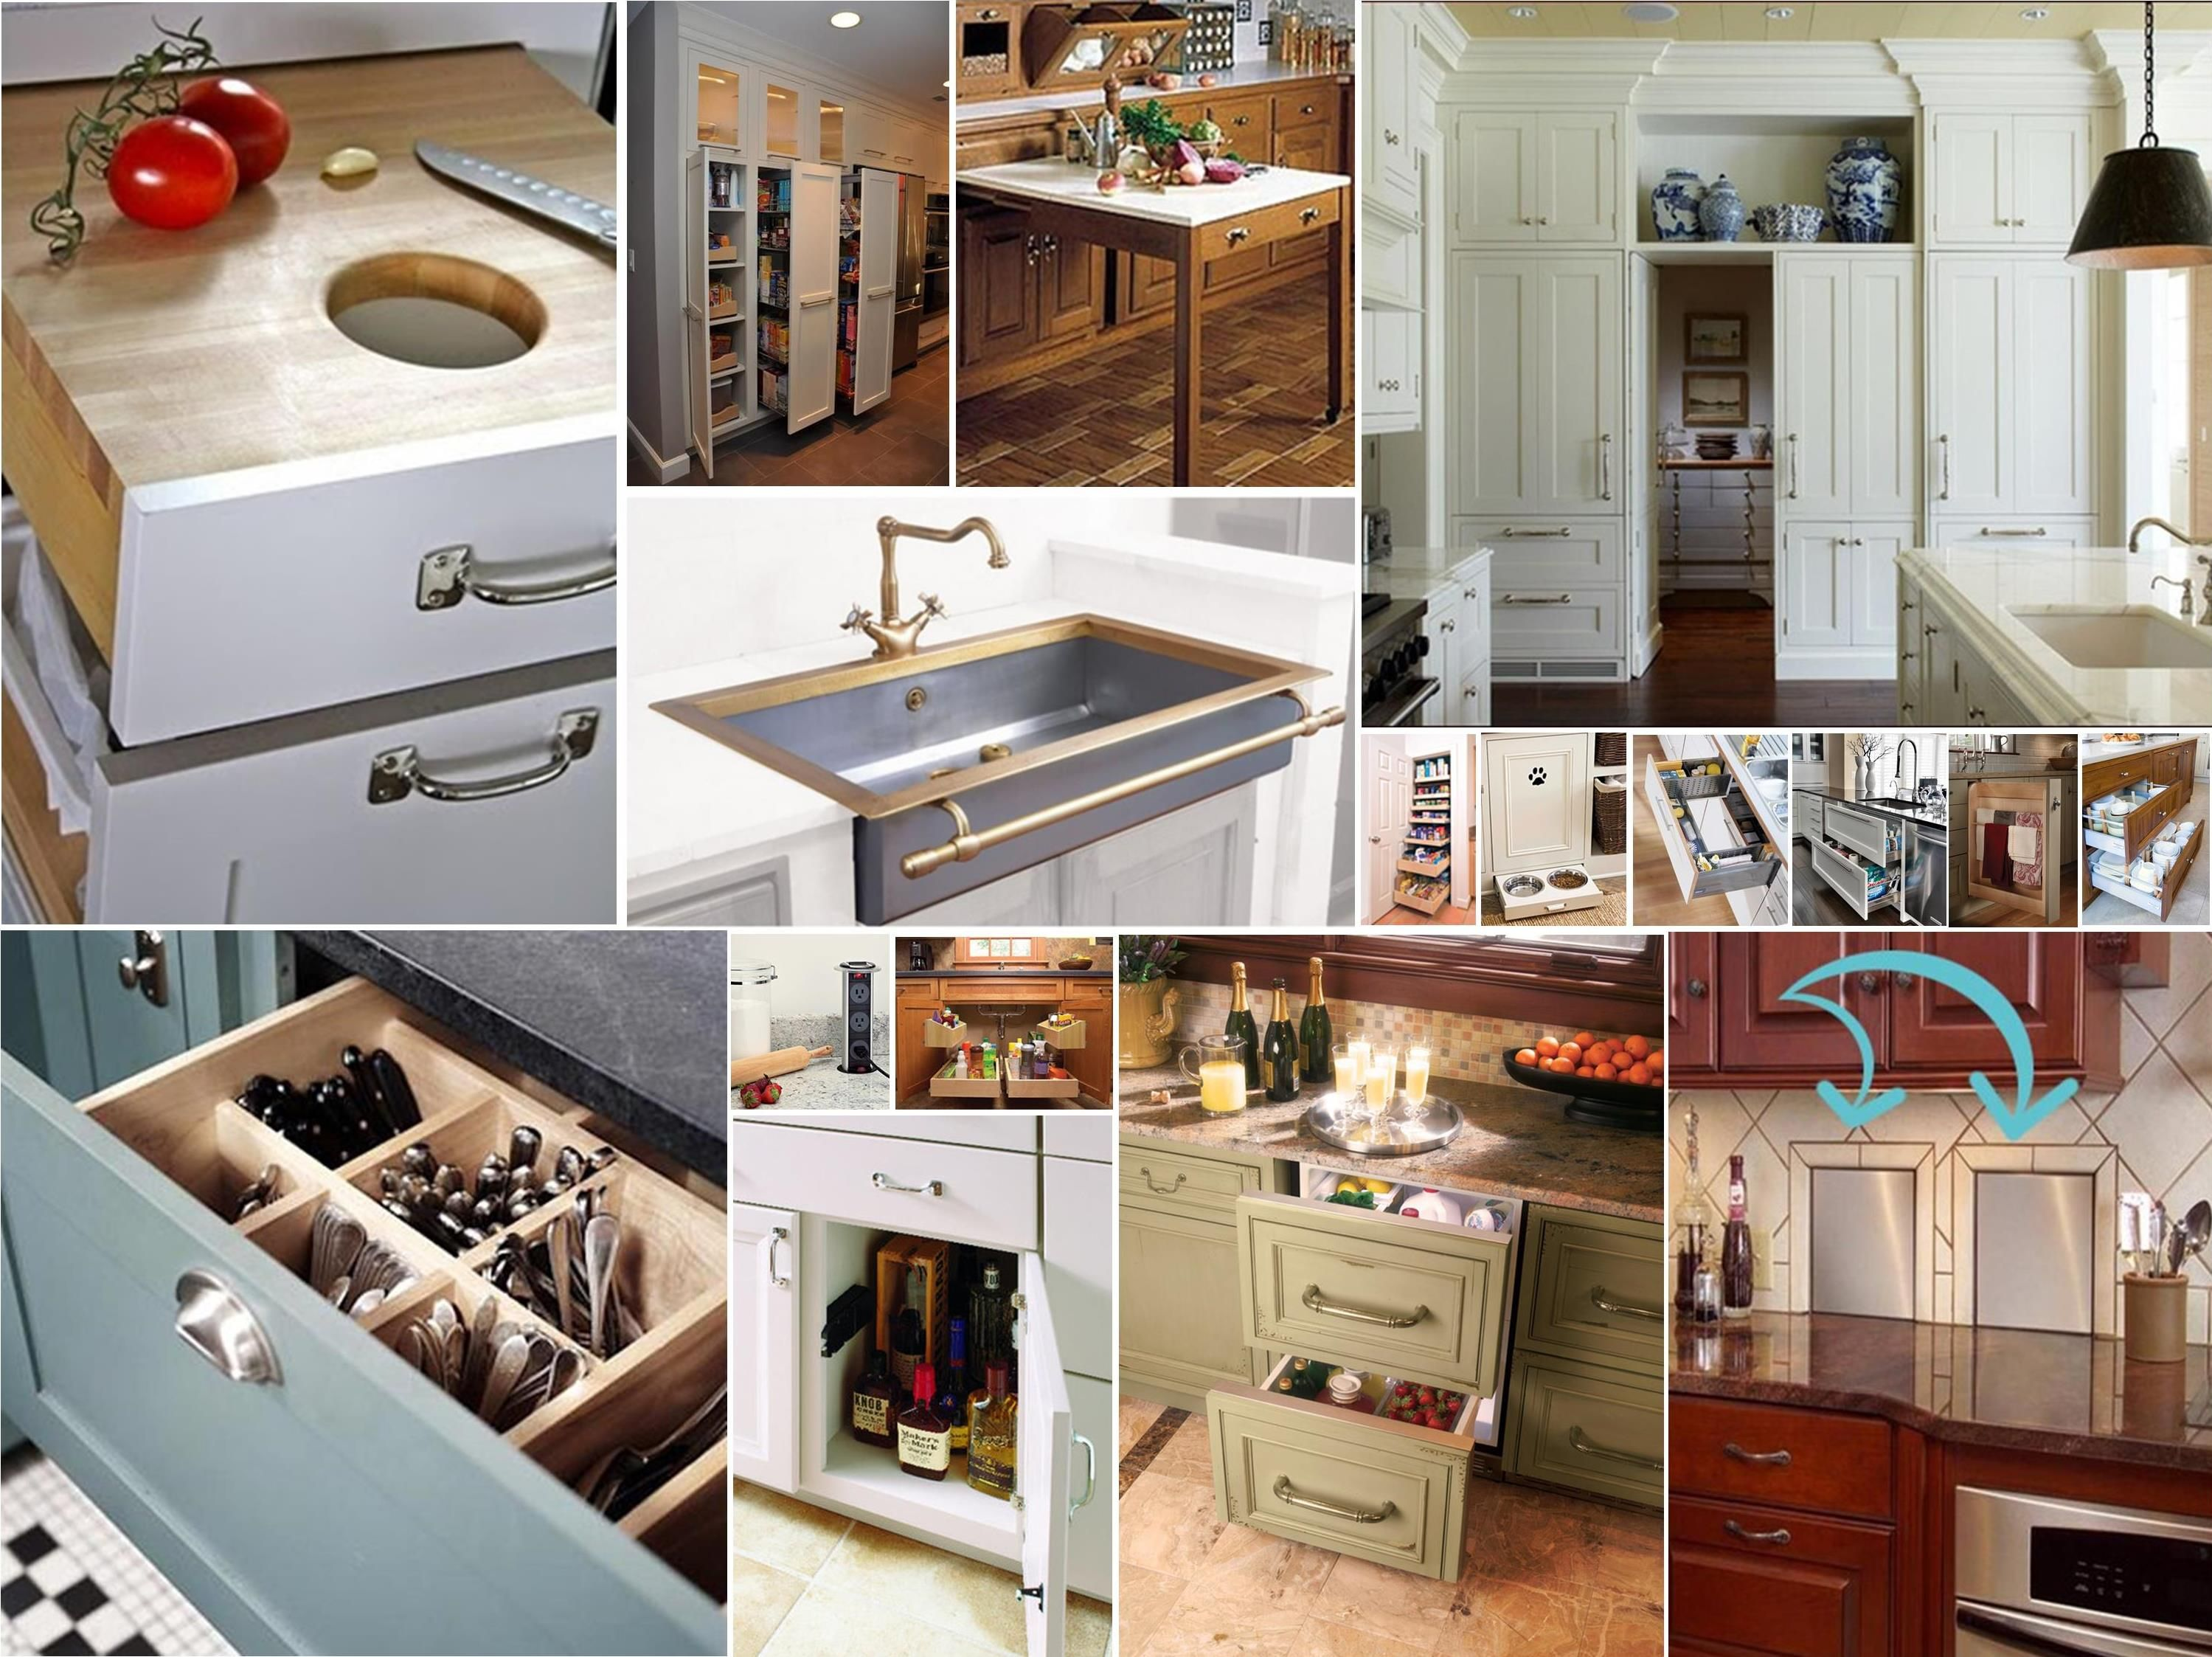 House Clever Small Kitchen Design